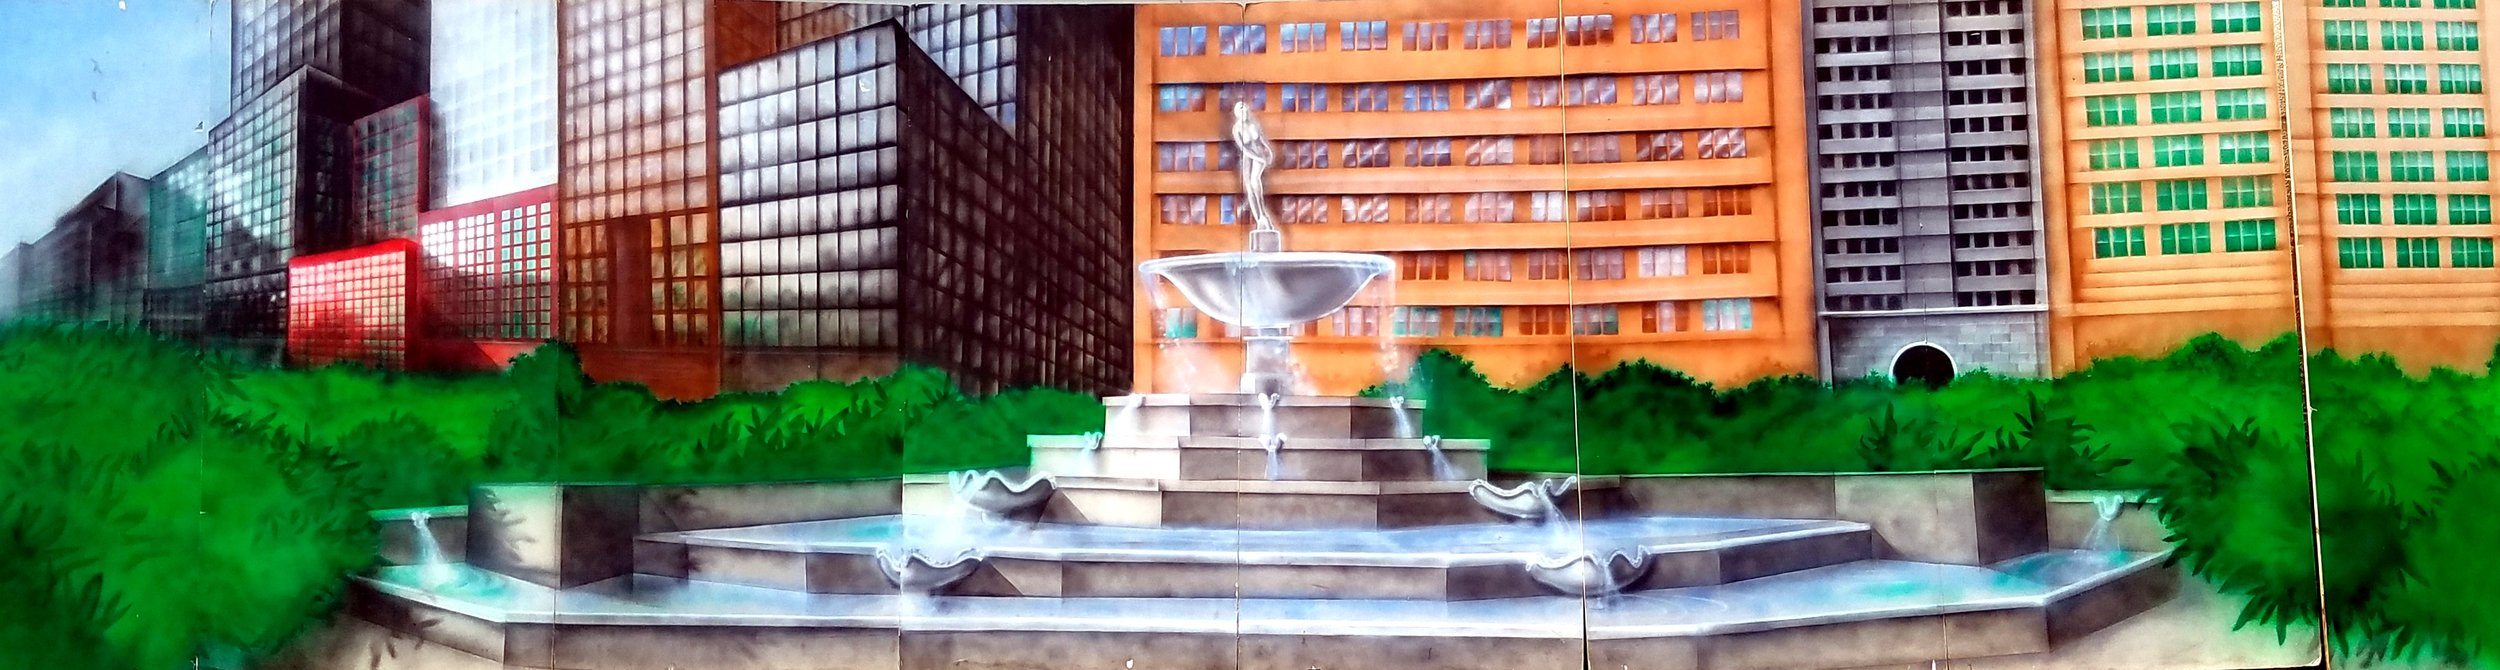 Downtown City Scene with Fountain- Measures 8' high and 32' wide, foam core